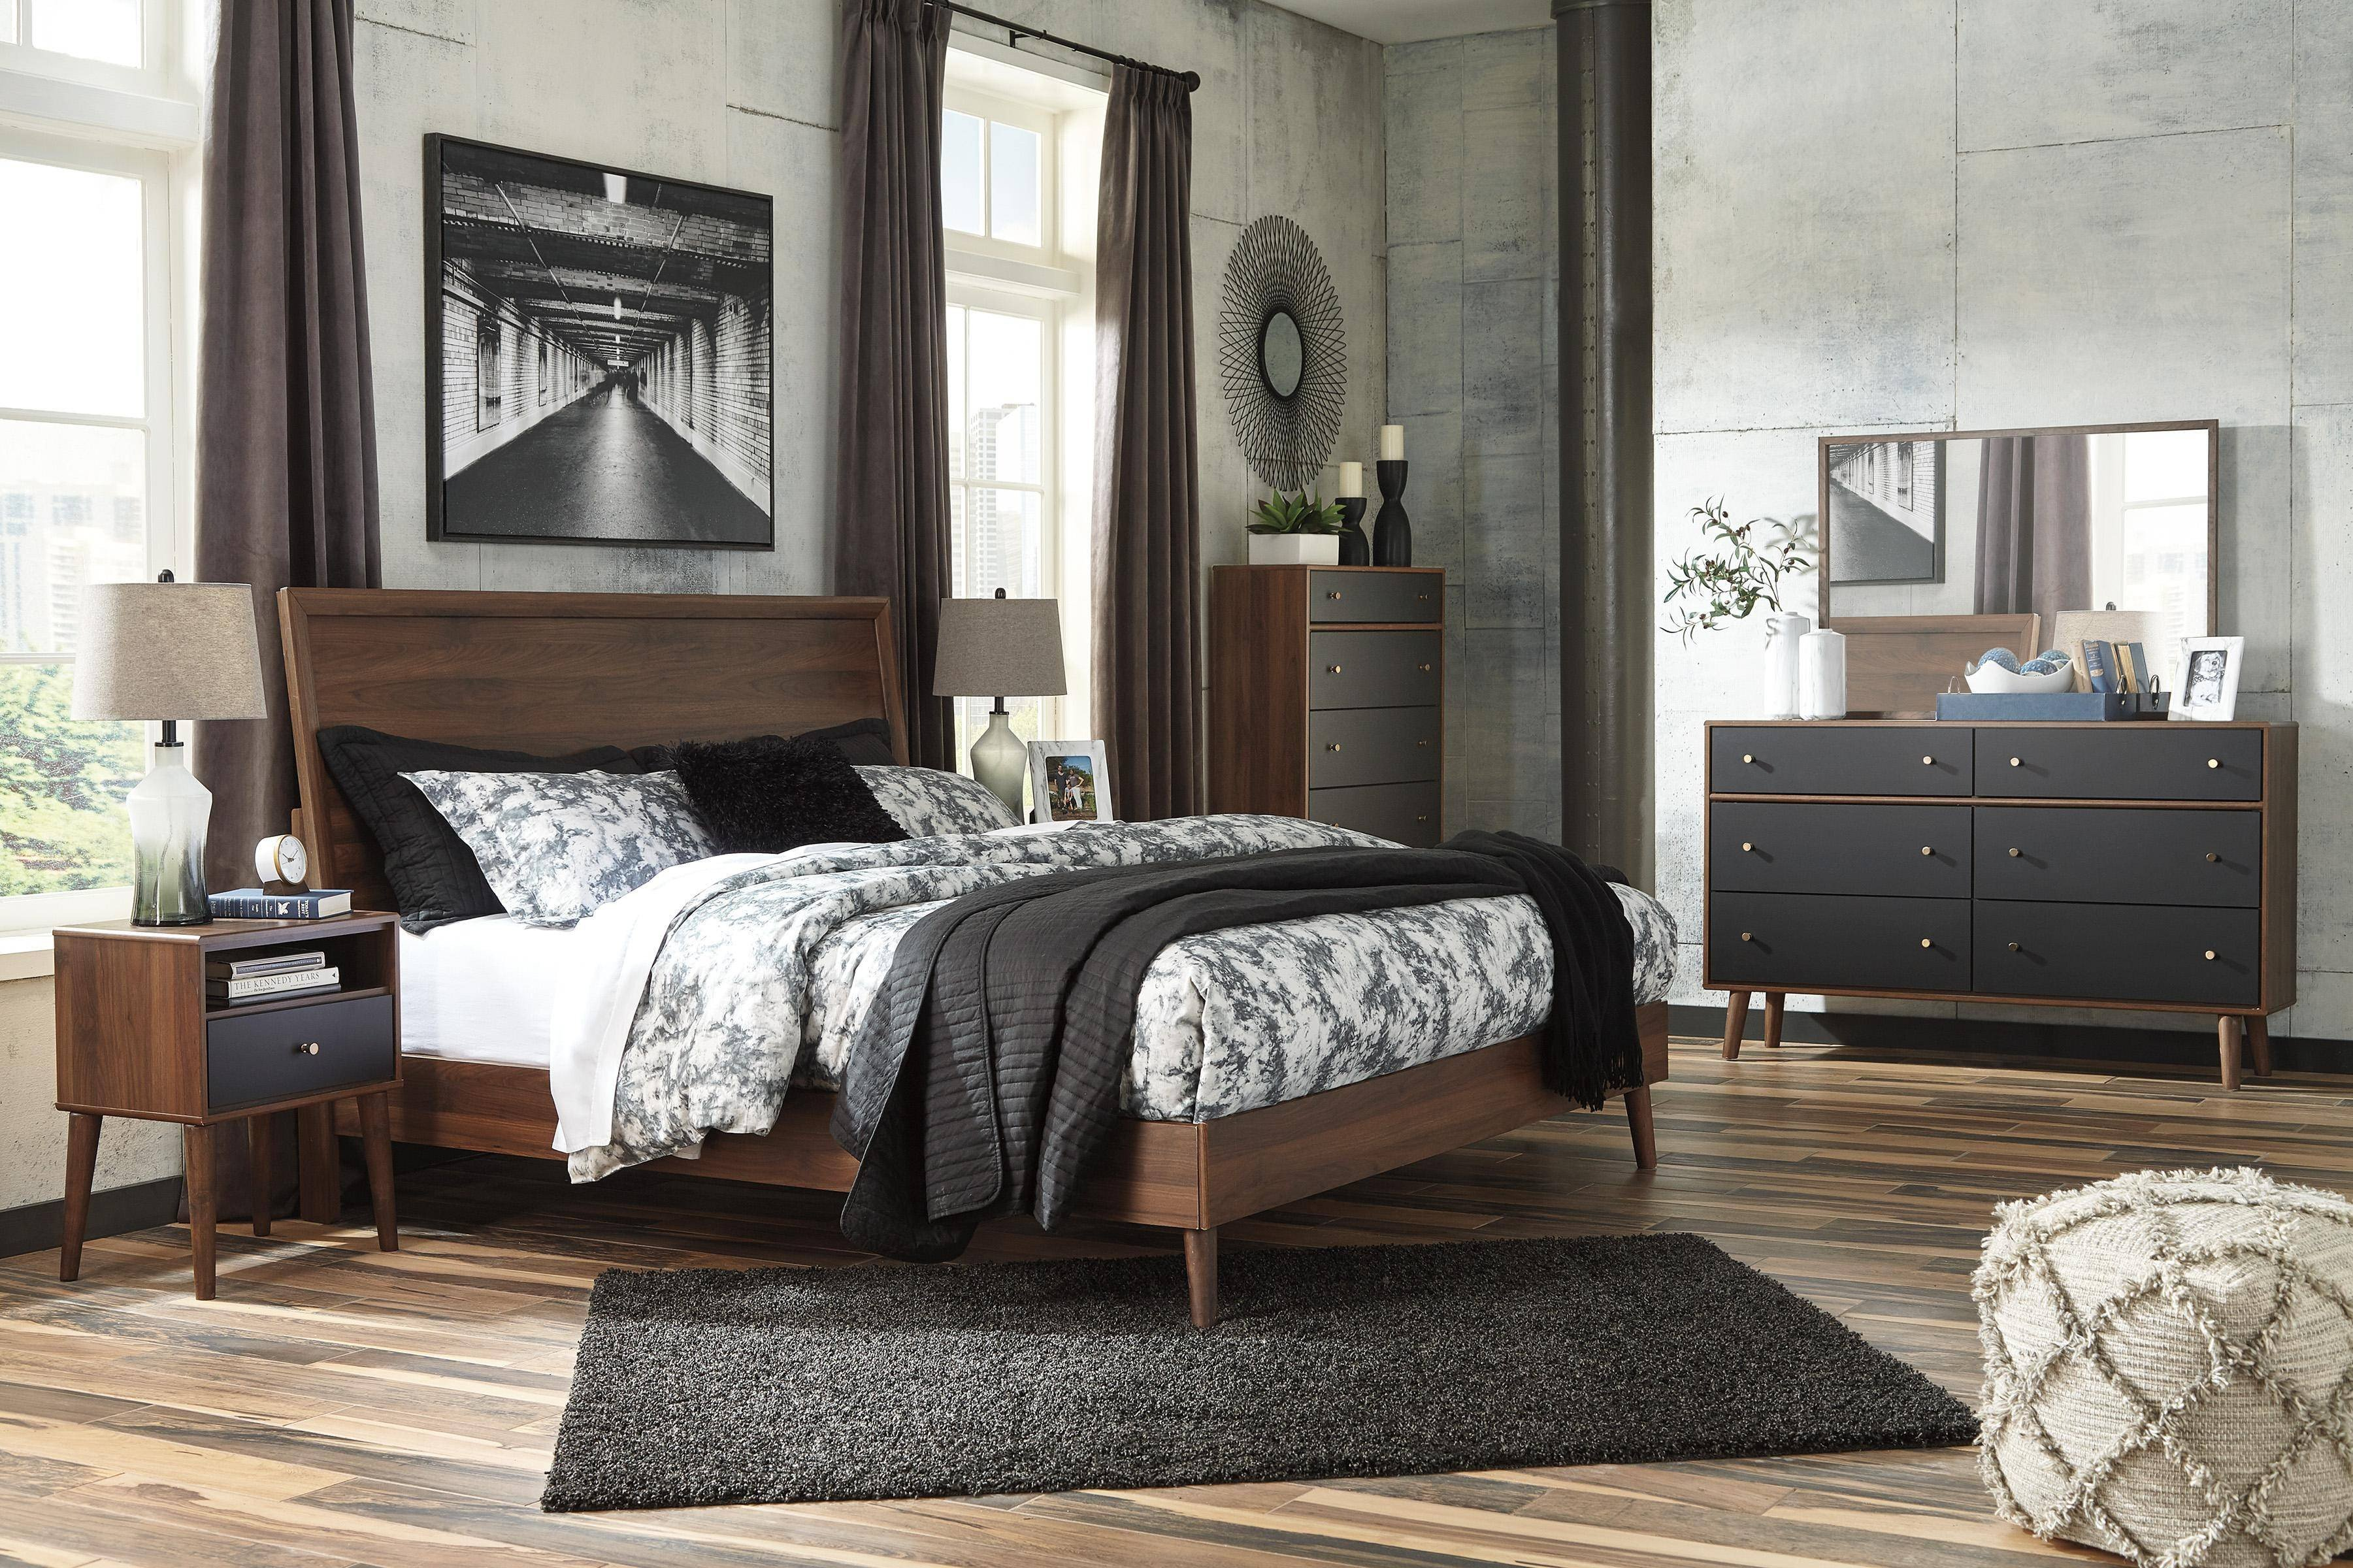 Ashley Furniture Bedroom Set Price New ashley Daneston B292 King Size Panel Bedroom Set 6pcs In